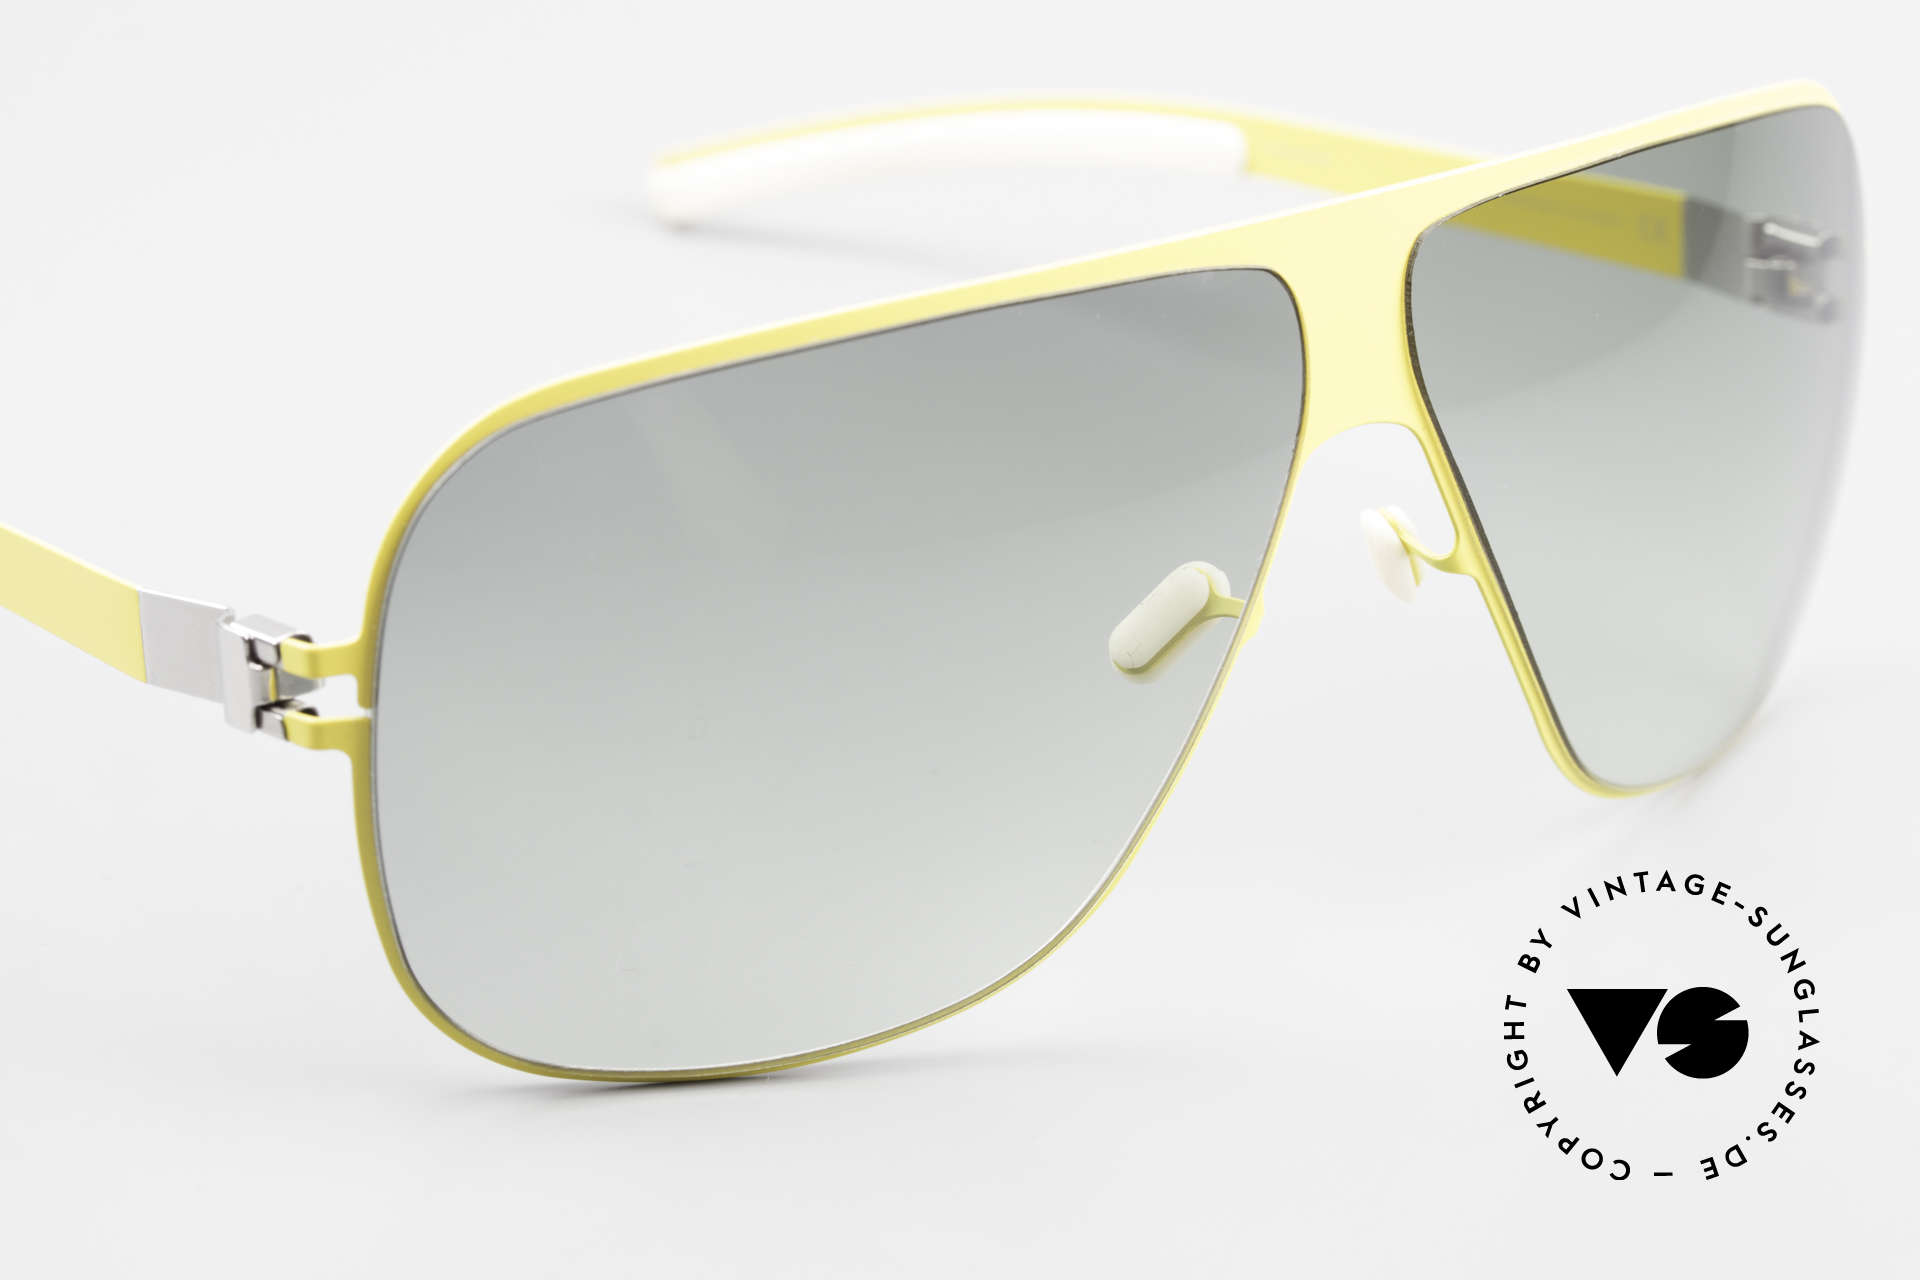 Mykita Hector Aviator Mykita Shades 2009's, thus, now available from us (unworn and with orig. case), Made for Men